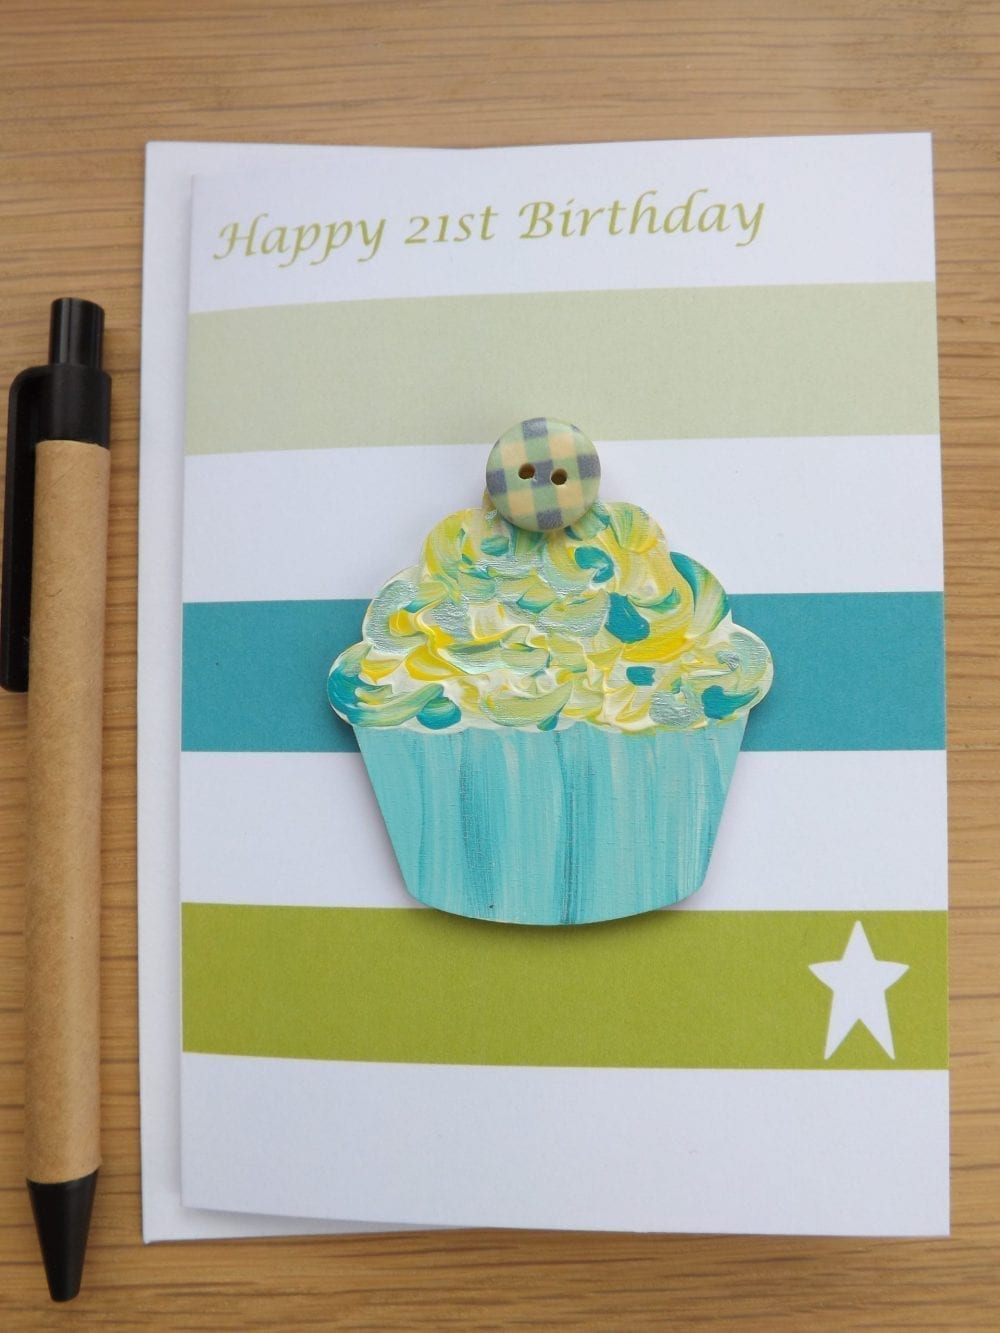 Happy 21st Birthday - card with Cupcake gift magnet